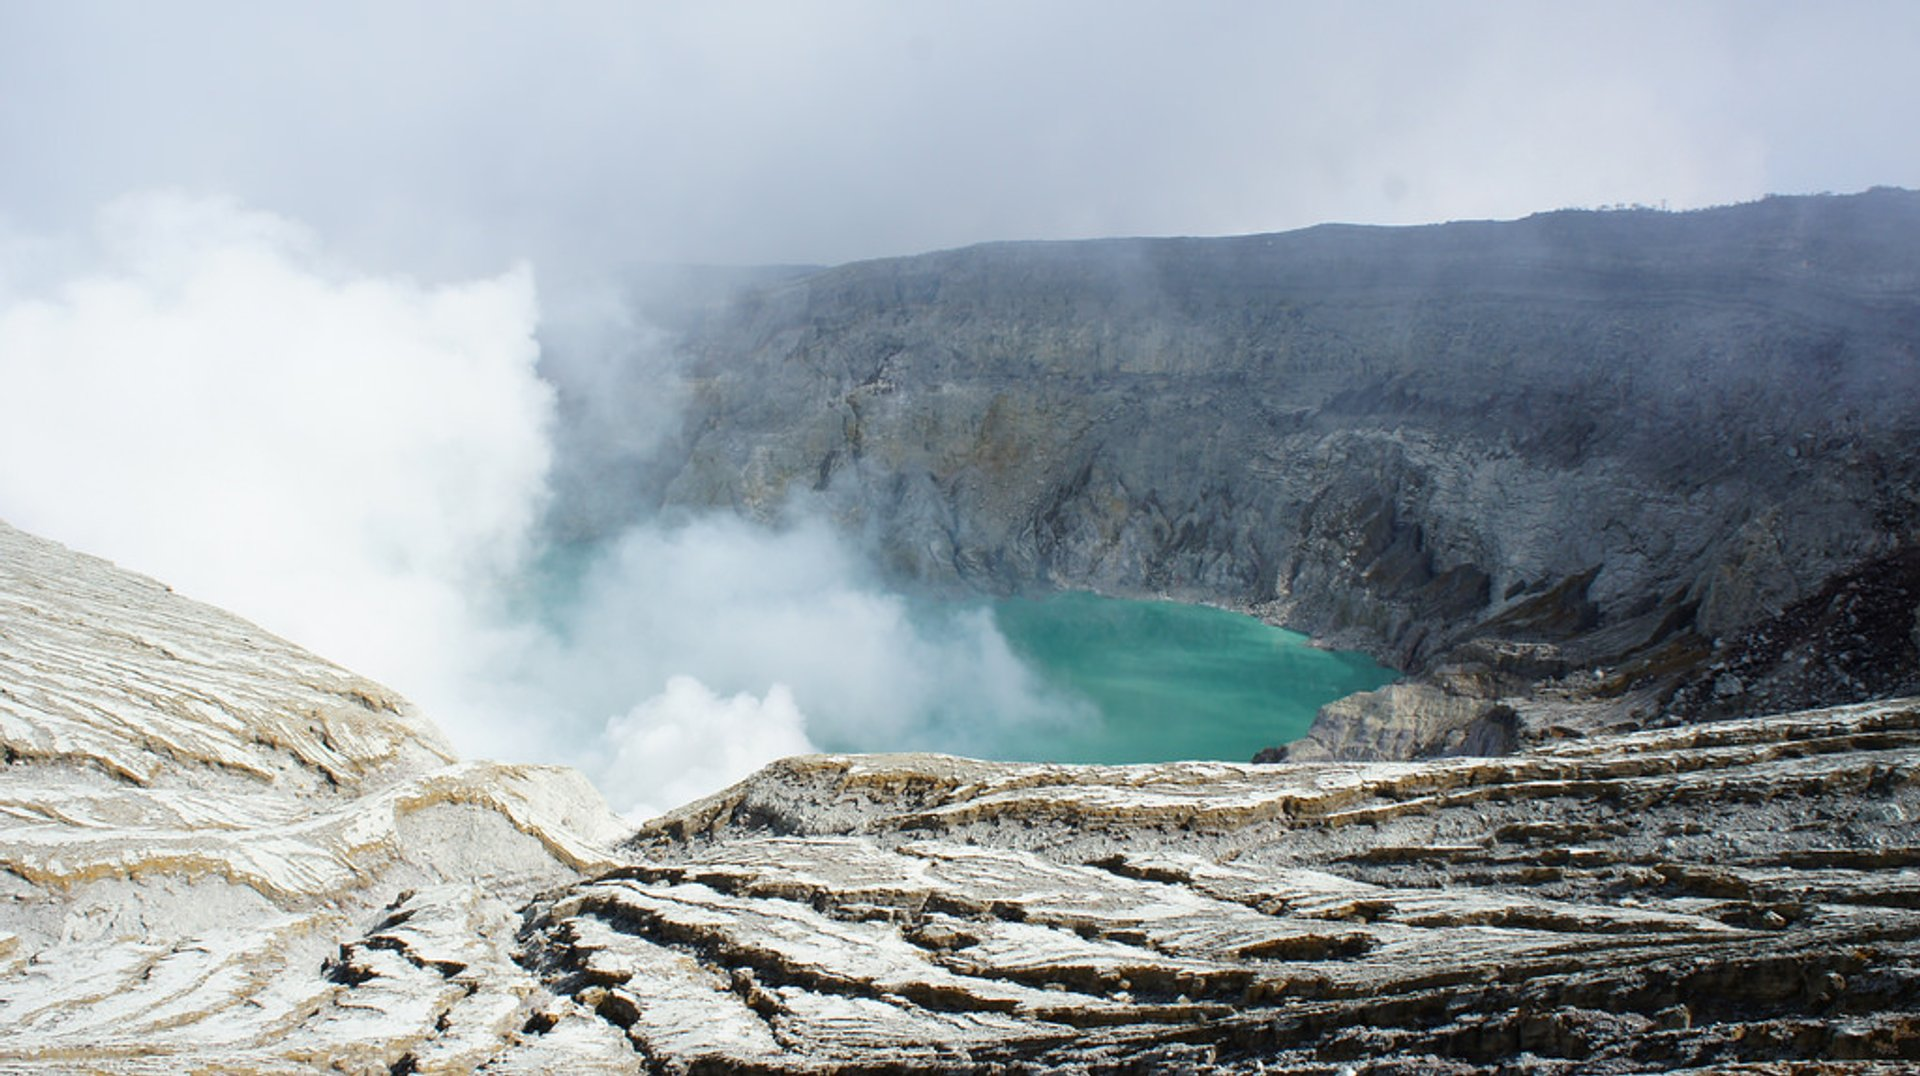 Kawah Ijen Volcano in Java 2020 - Best Time